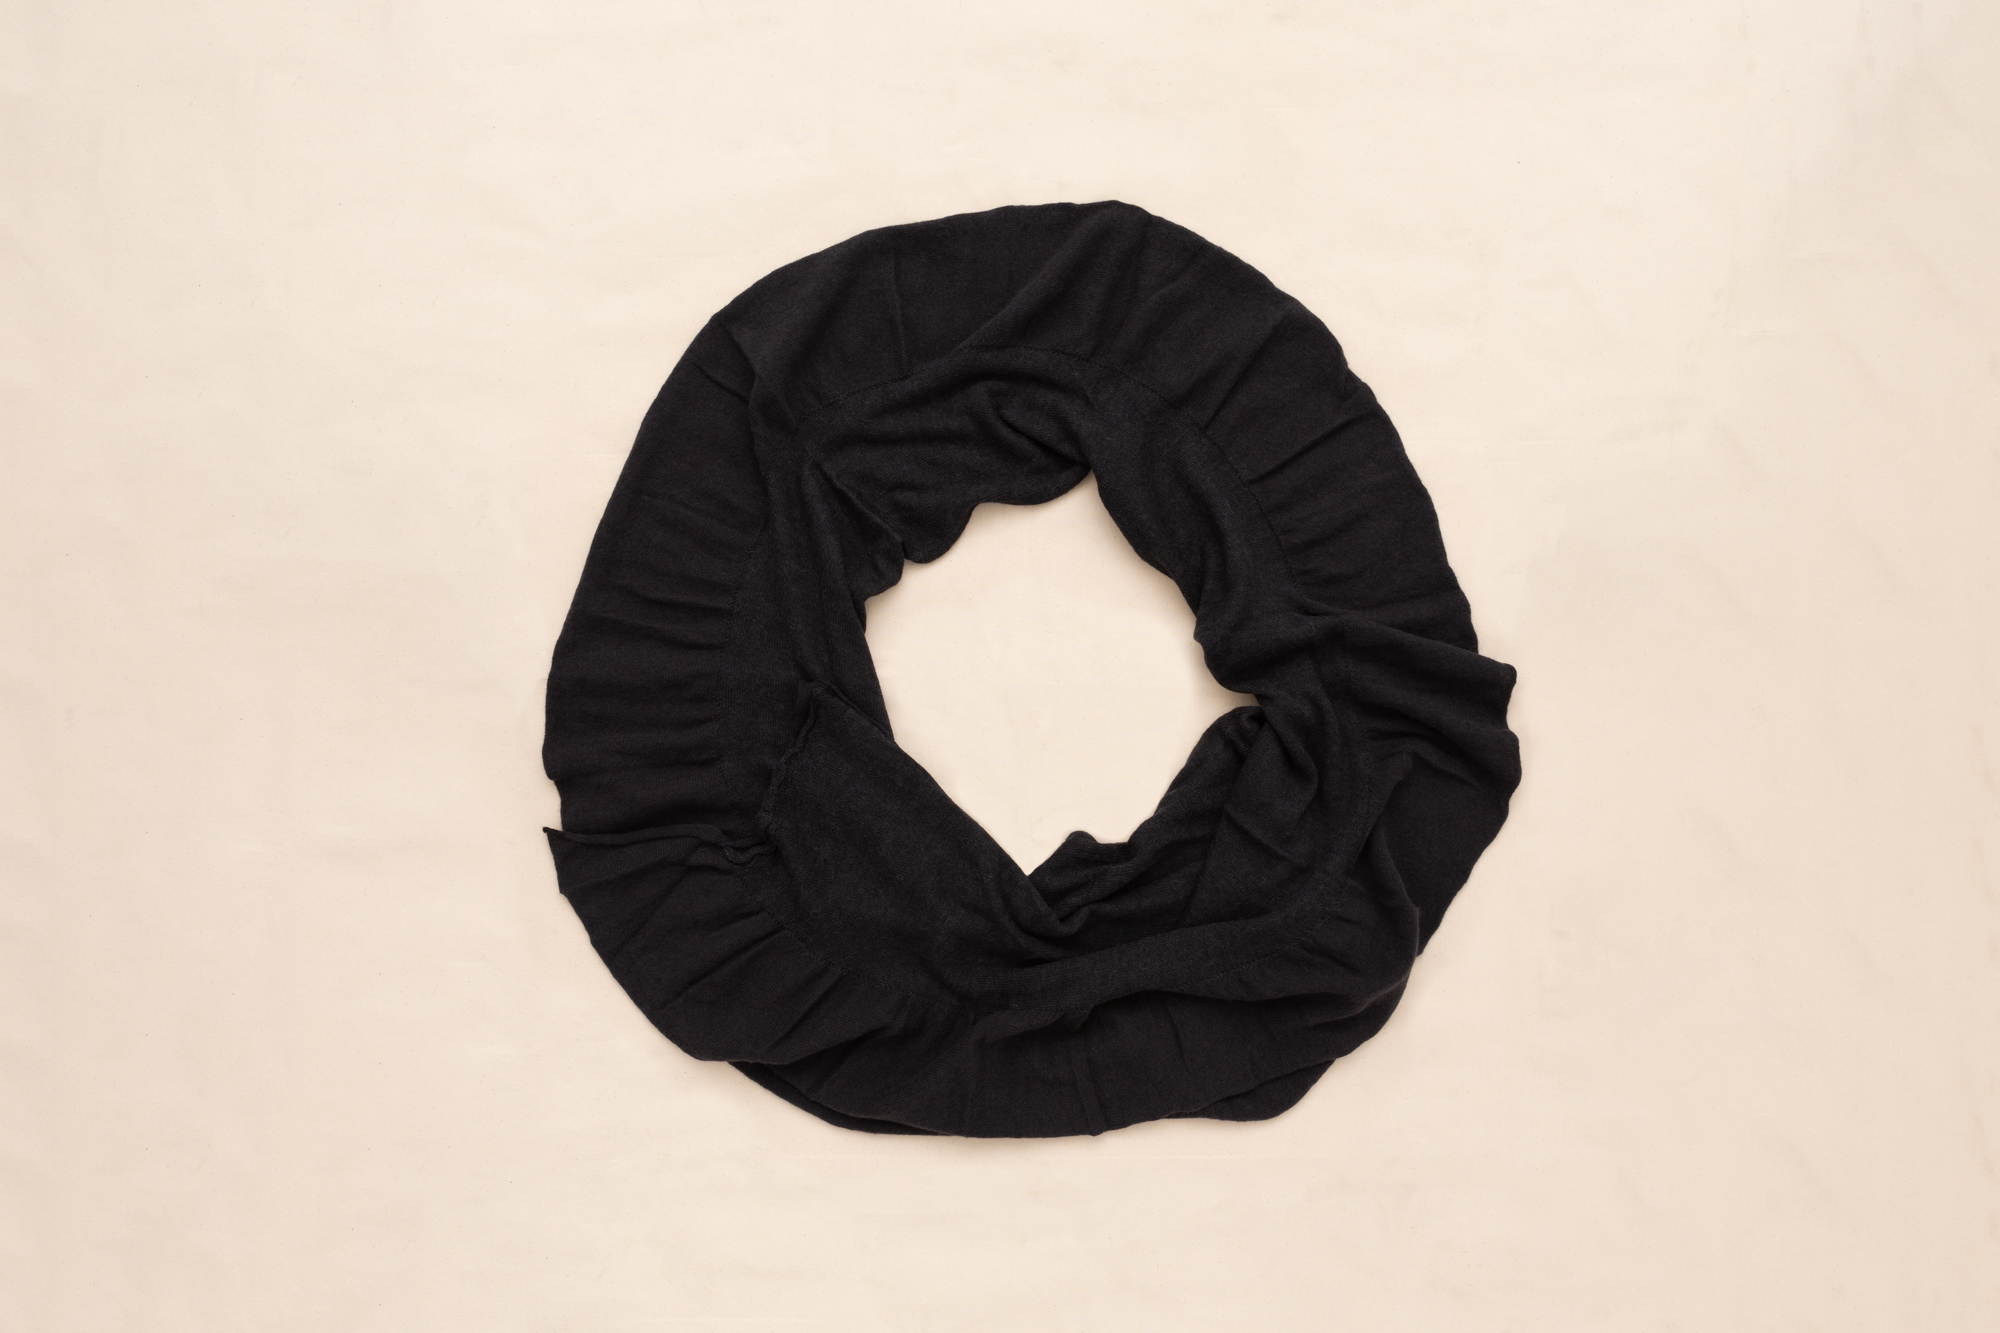 WAVE LAYERED SCARF BY LUCA LAURINI